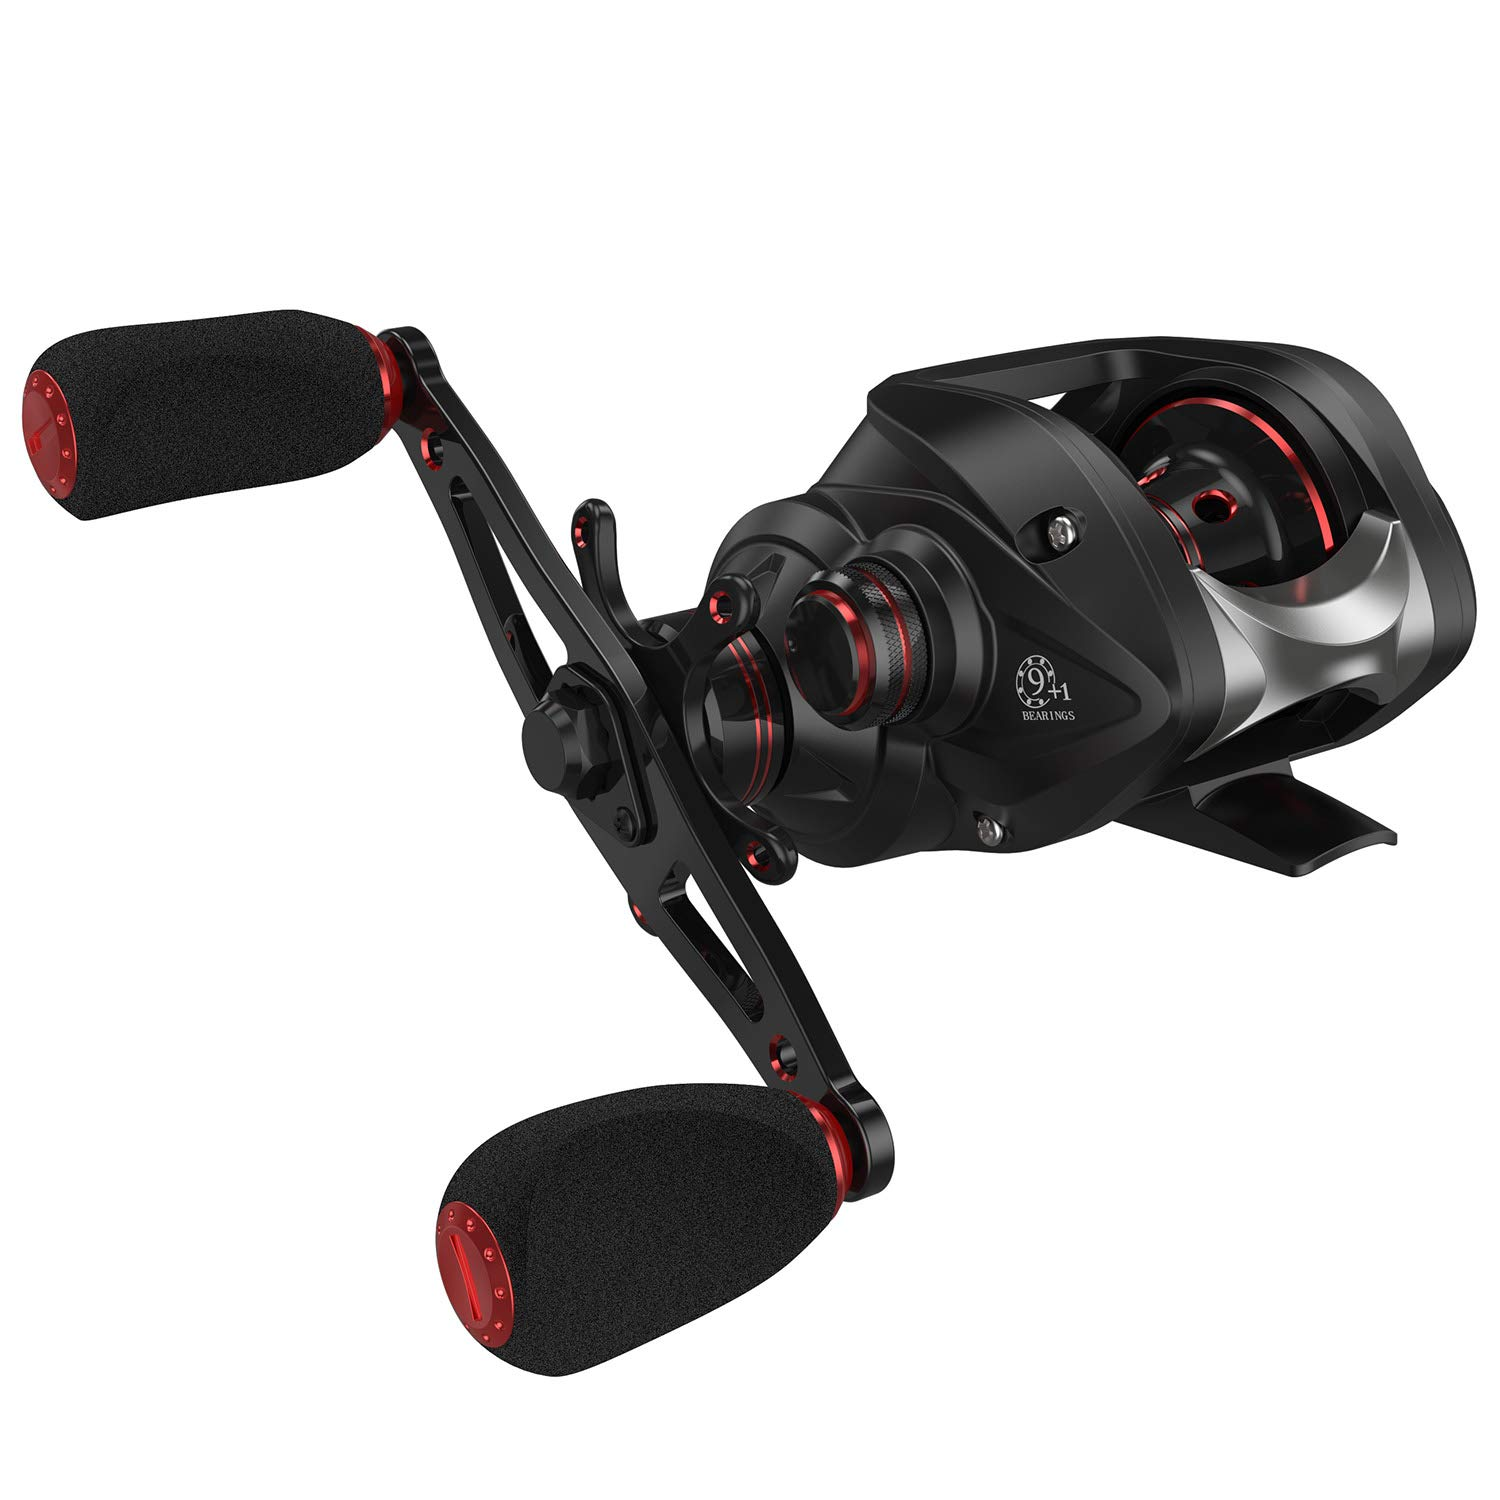 Magreel Baitcasting Fishing Reel, High Speed 7.0 1 Gear Ratio Baitcaster Reel with Magnetic Braking System, Super Smooth 9 1 Stainless Steel Ball Bearings